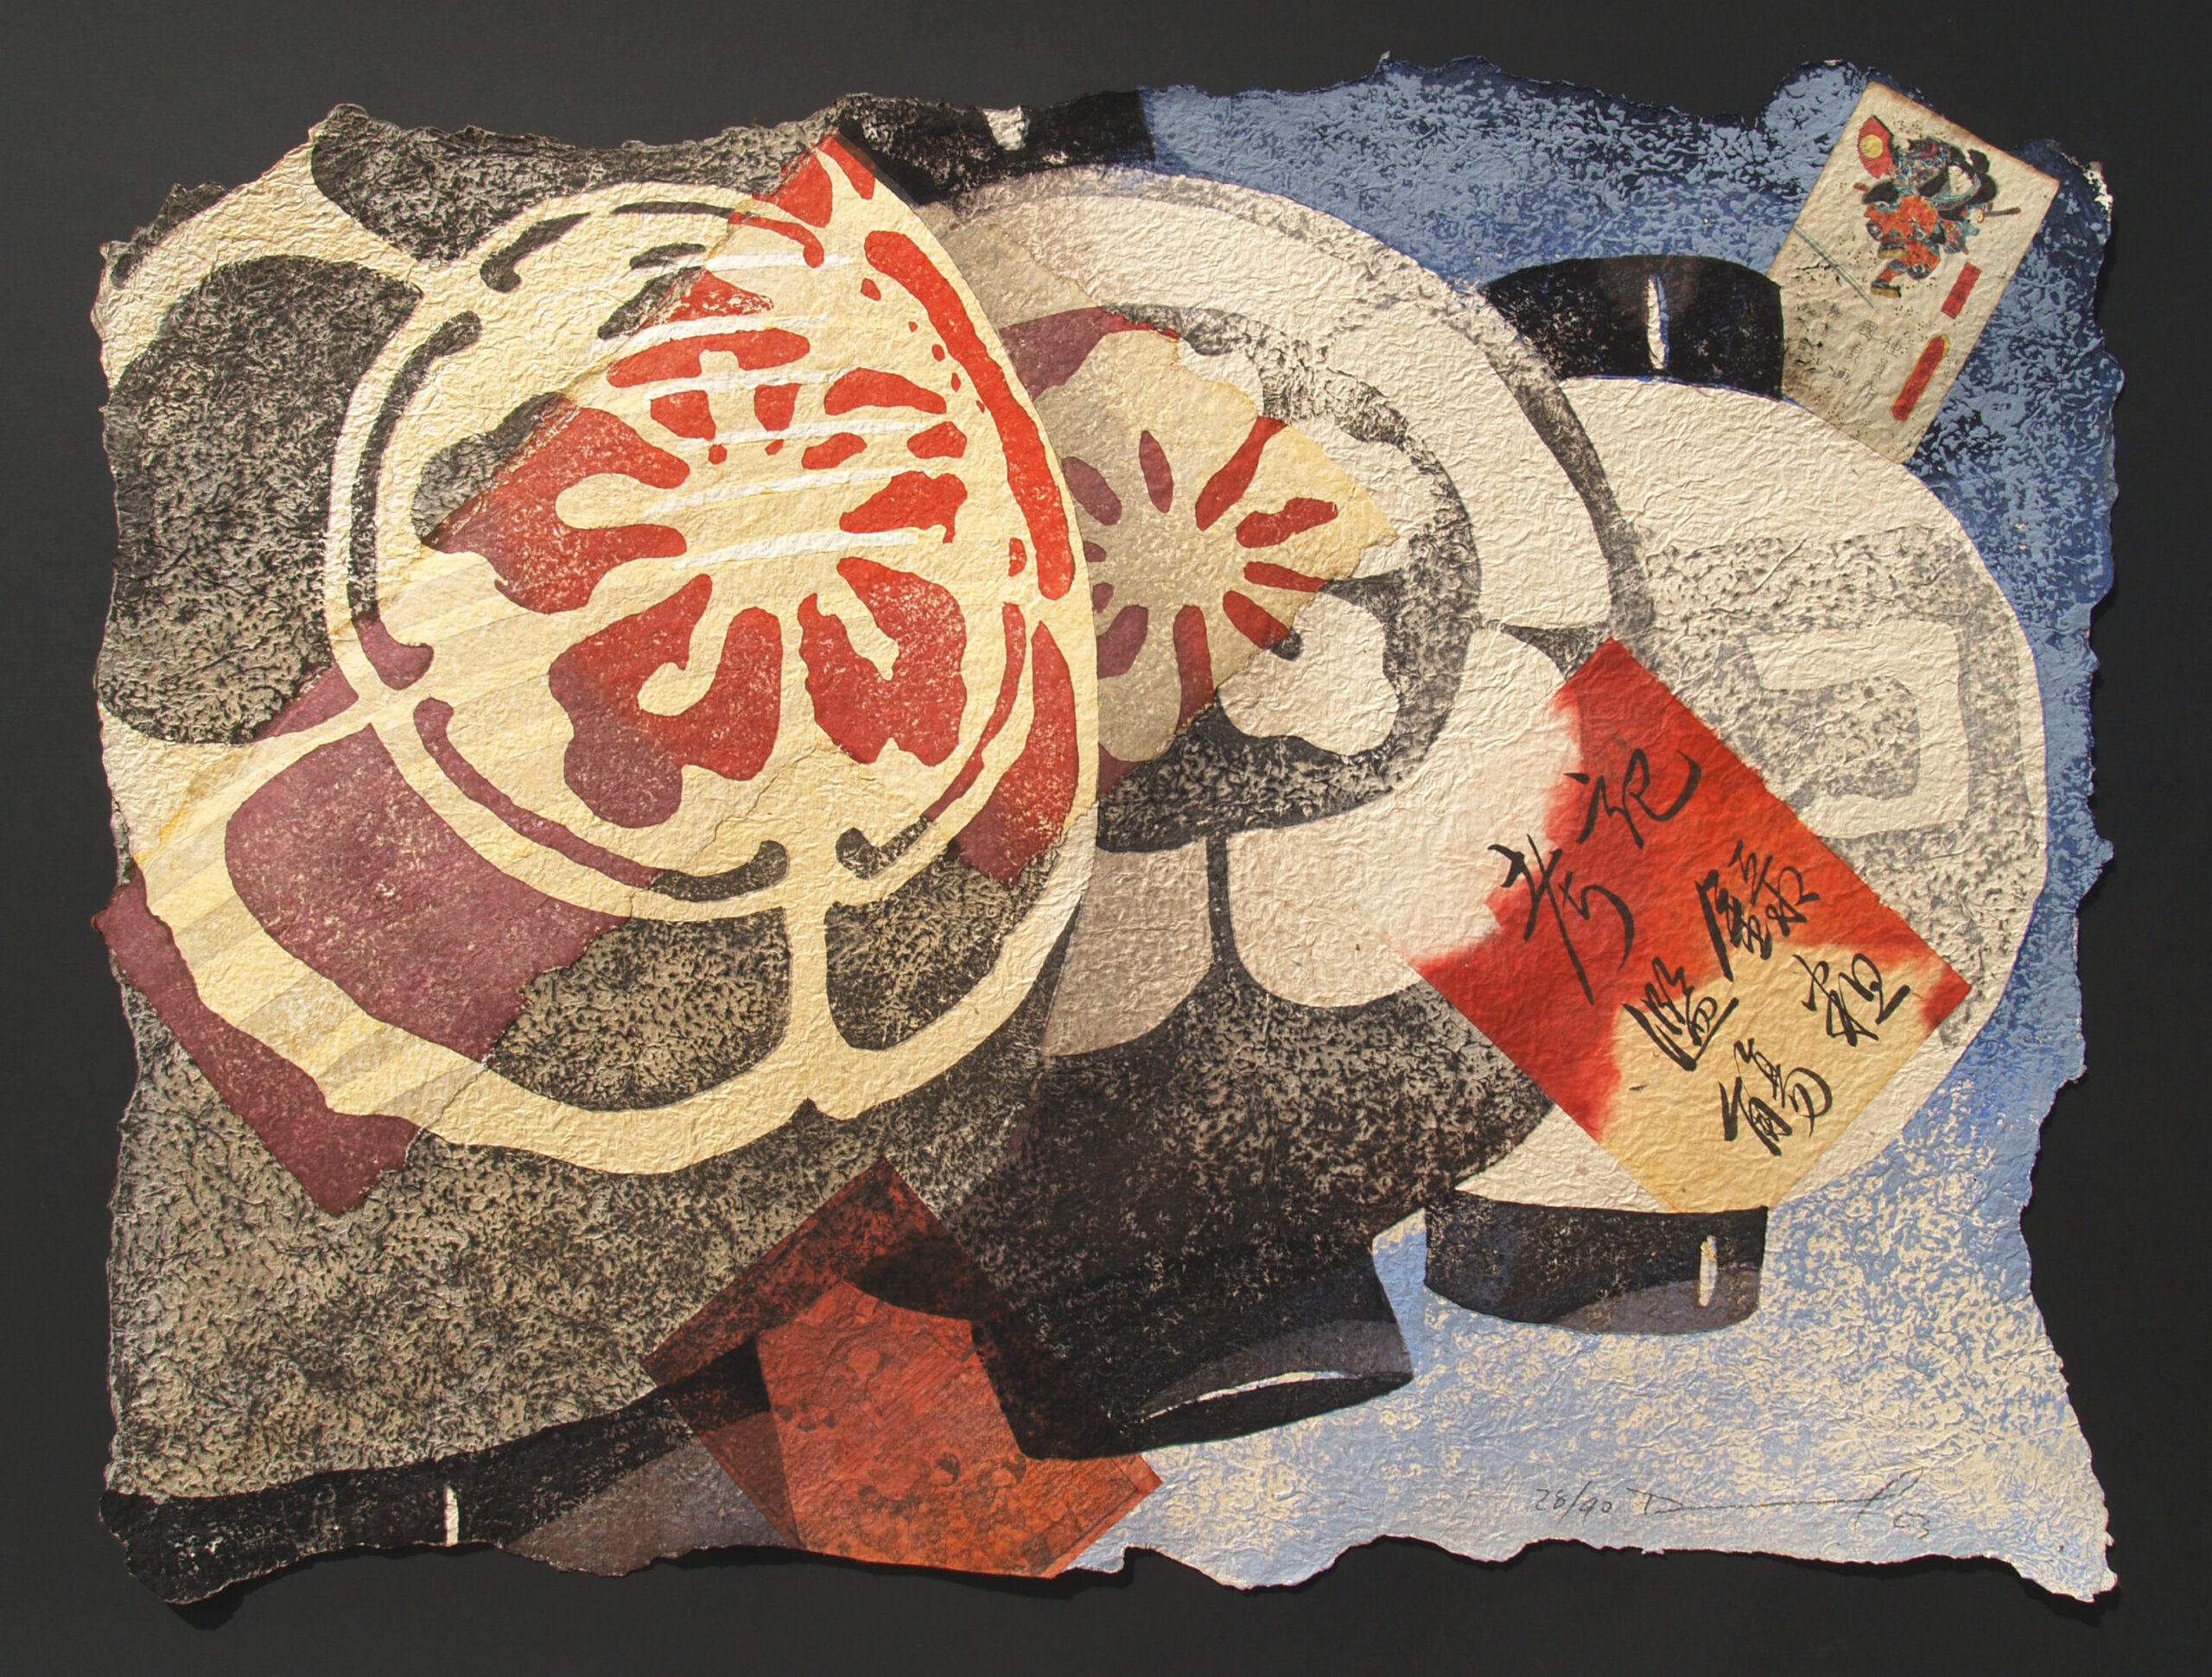 """Daniel Kelly - """"Luna"""" - 2003, Woodblock on Nepalese paper with chine colle of Tahi mulberry paper and Edo-period hand-written pages, Edo Ed of 90, Framed size 104 x 130 cm"""